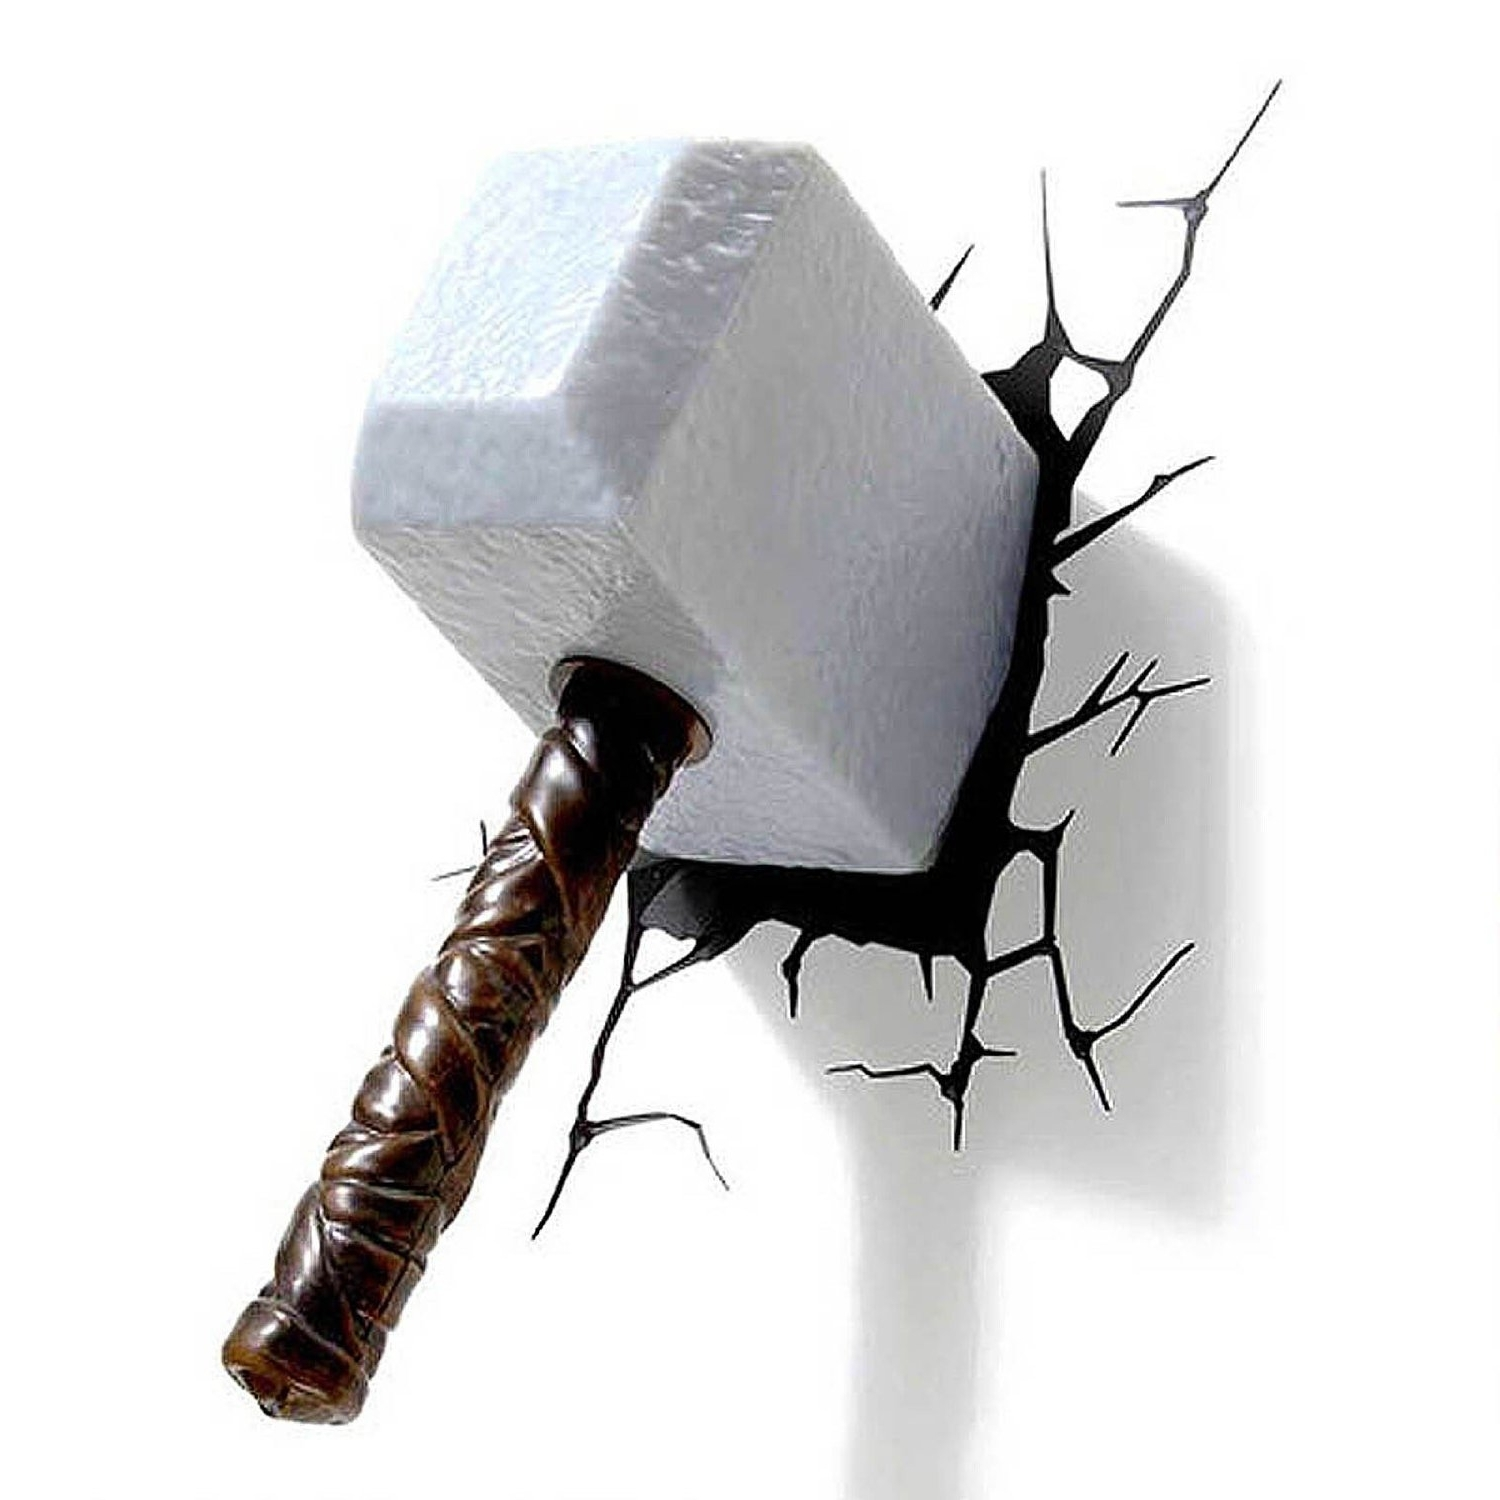 Photos of thor hammer 3d wall art showing 1 of 15 photos most up to date thor mjolnir hammer 3d wall light for sale lolcoolstuff within thor mozeypictures Image collections